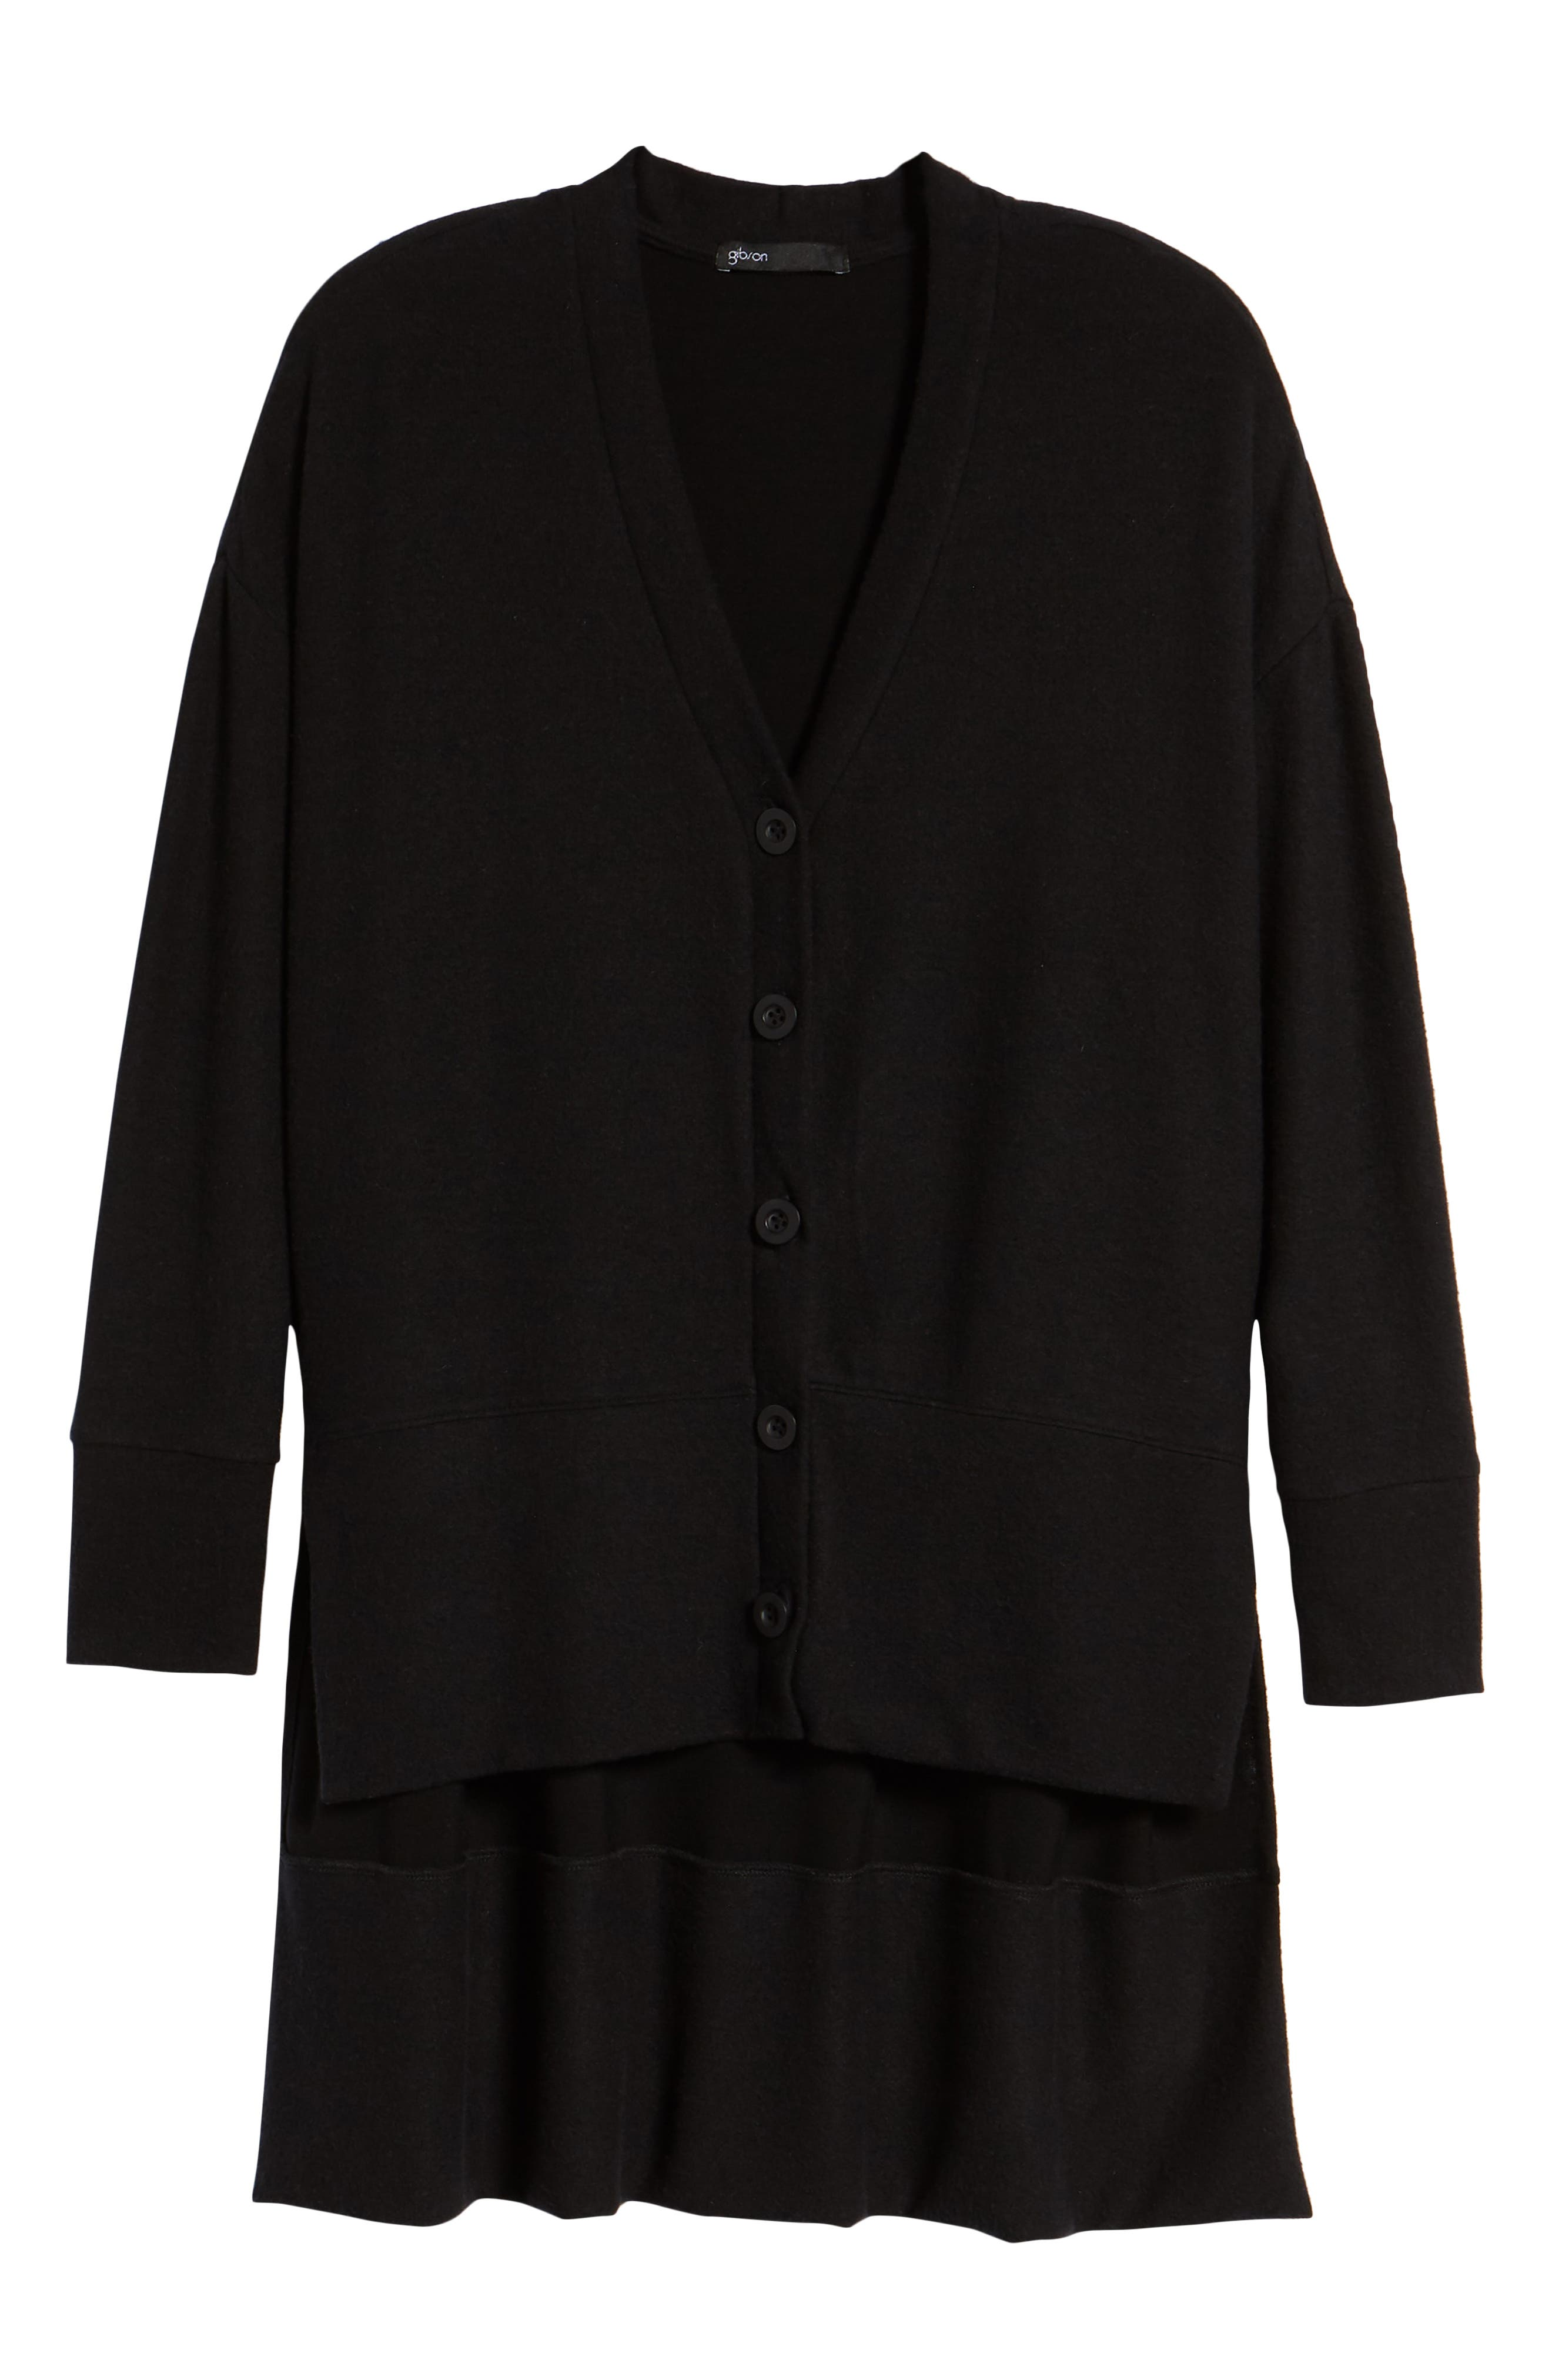 GIBSON, High/Low Easy Cardigan, Alternate thumbnail 7, color, BLACK